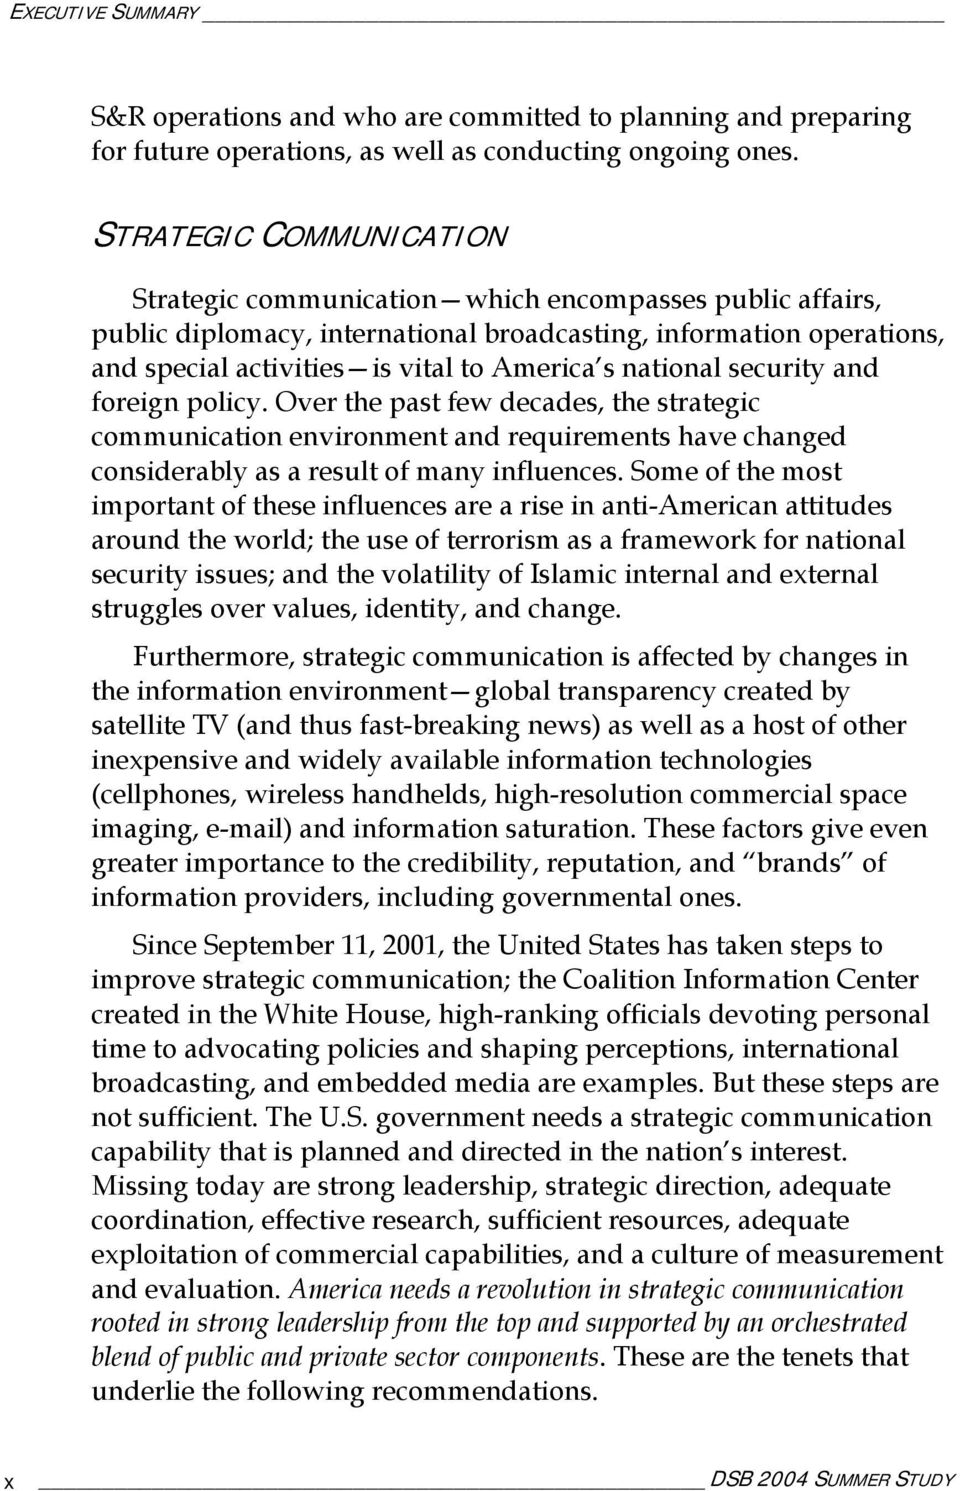 national security and foreign policy. Over the past few decades, the strategic communication environment and requirements have changed considerably as a result of many influences.